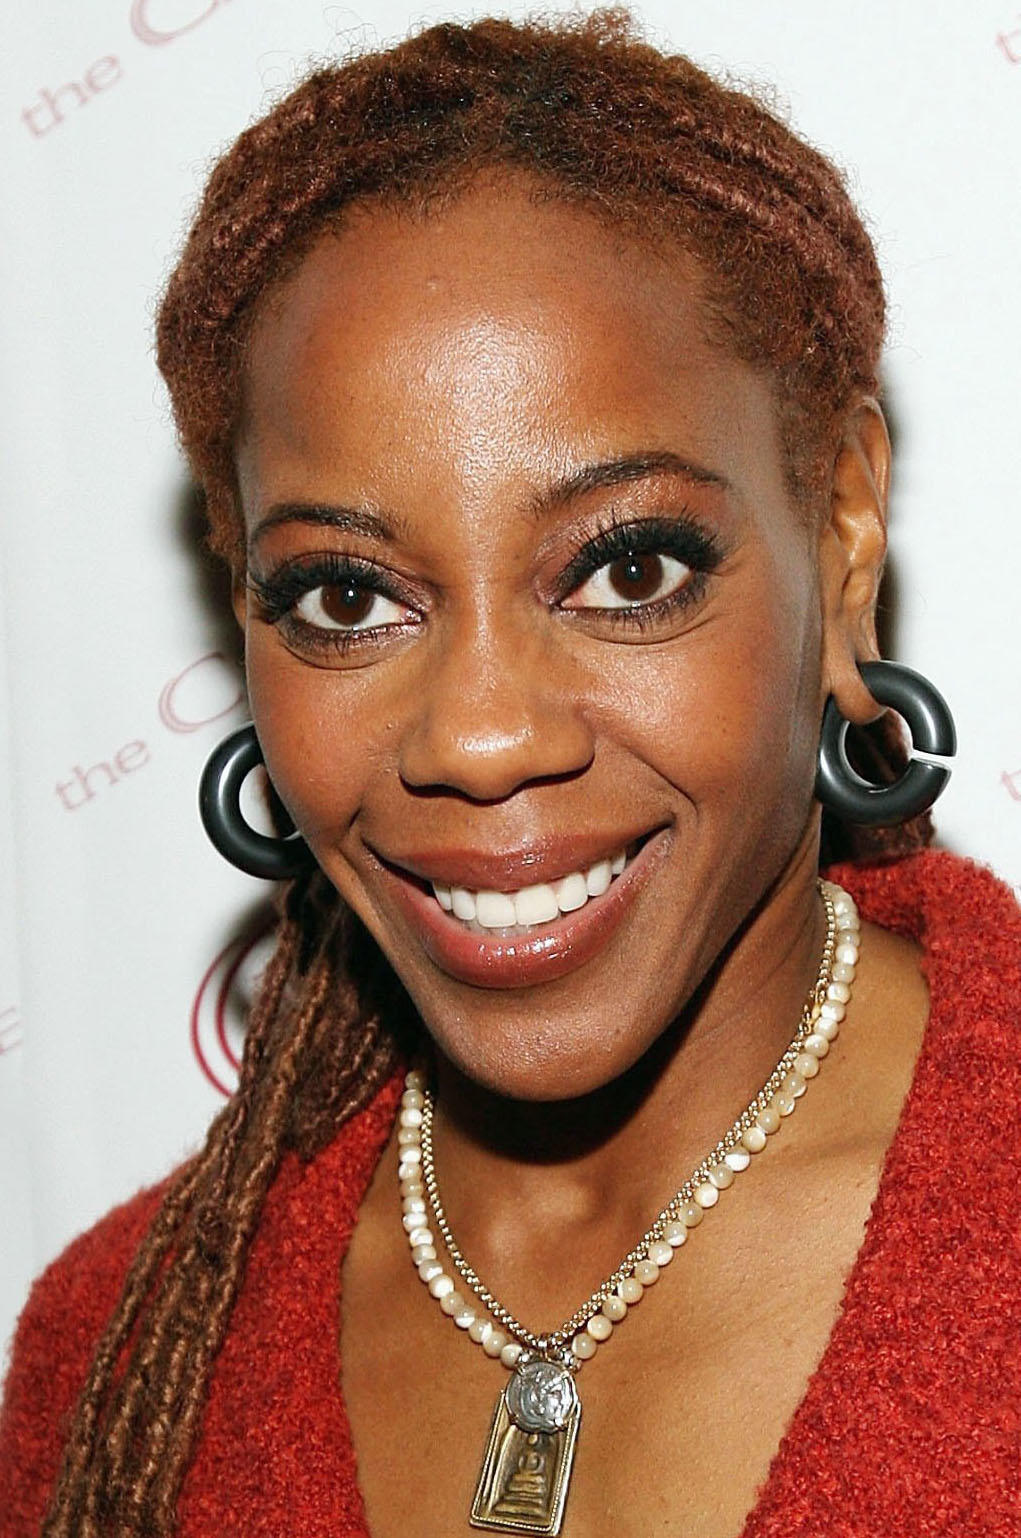 Debra Wilson nude (42 foto and video), Tits, Sideboobs, Twitter, in bikini 2017